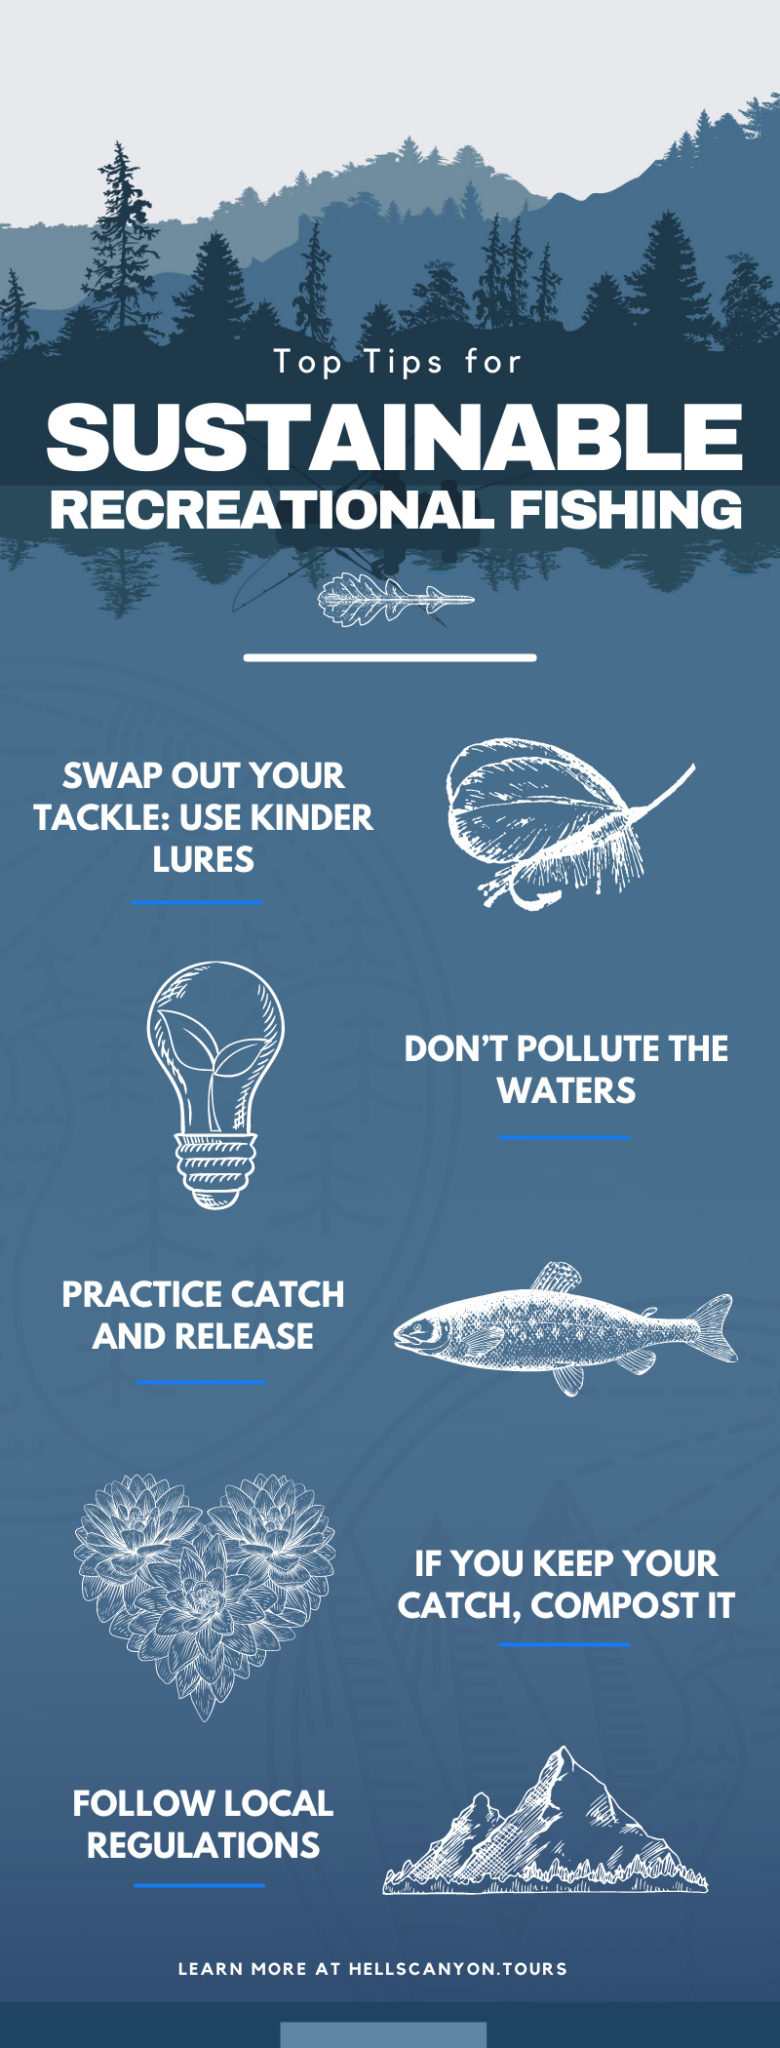 Top Tips for Sustainable Recreational Fishing